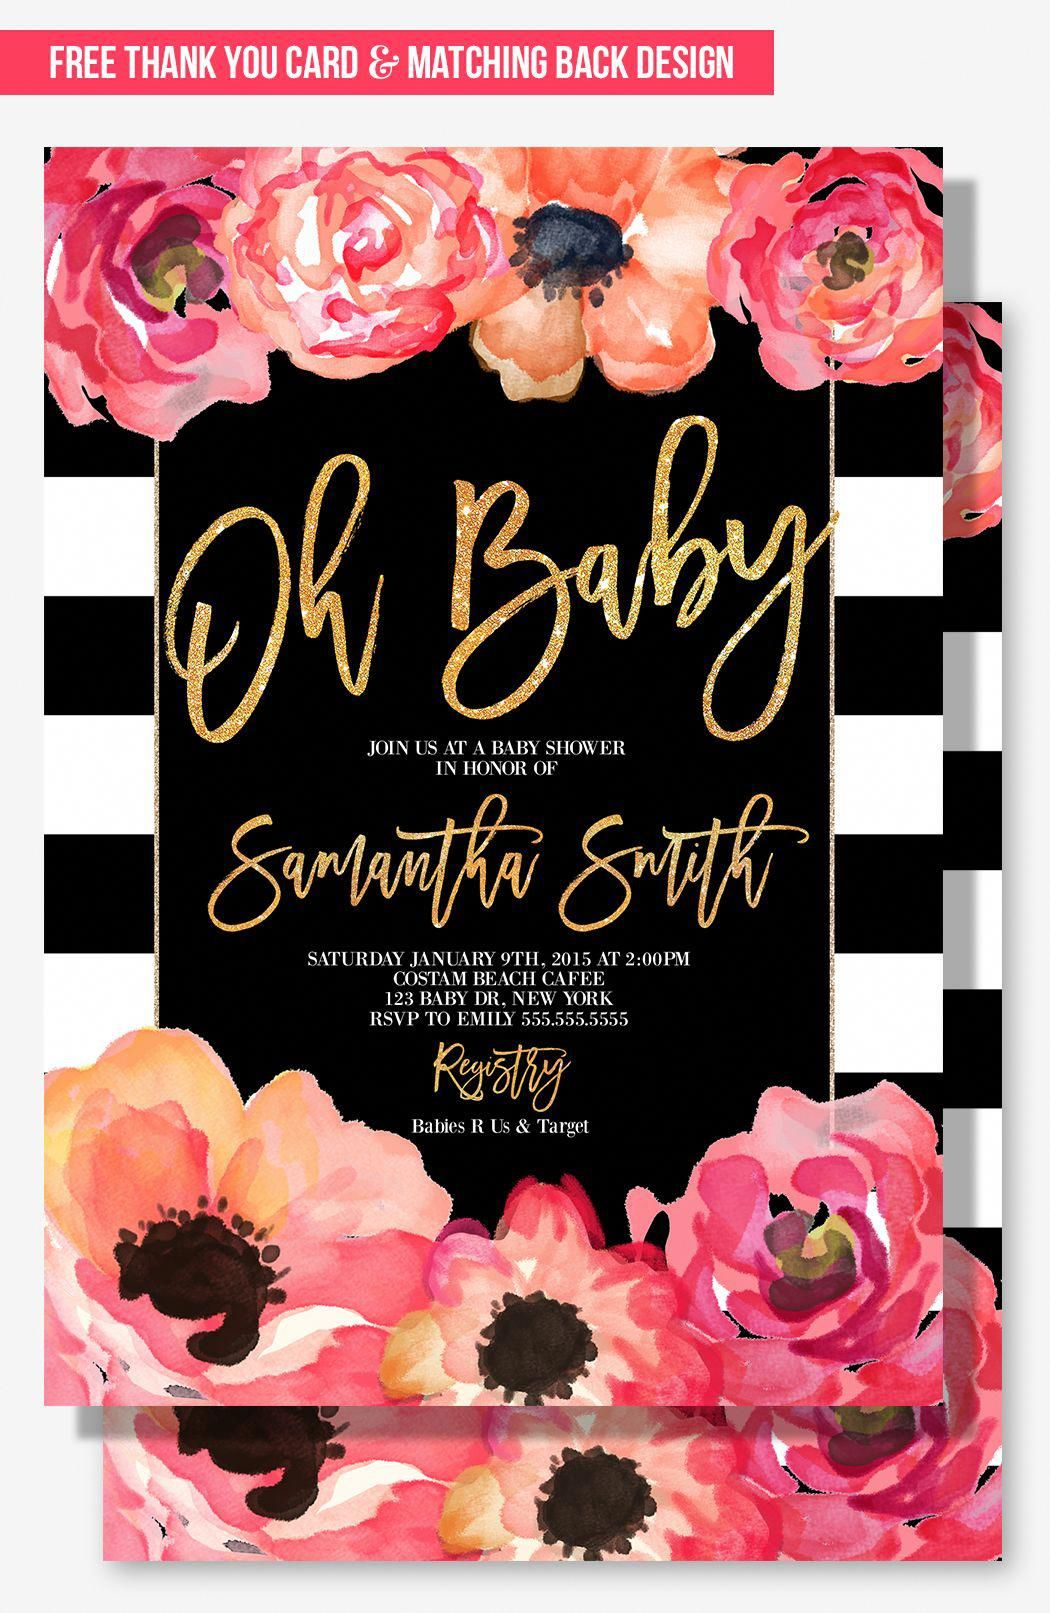 Glamorous Baby Shower Invitation For Your Modern Party Theme Blush Pink And Peach With Gold Glitter Details Black White Stripes